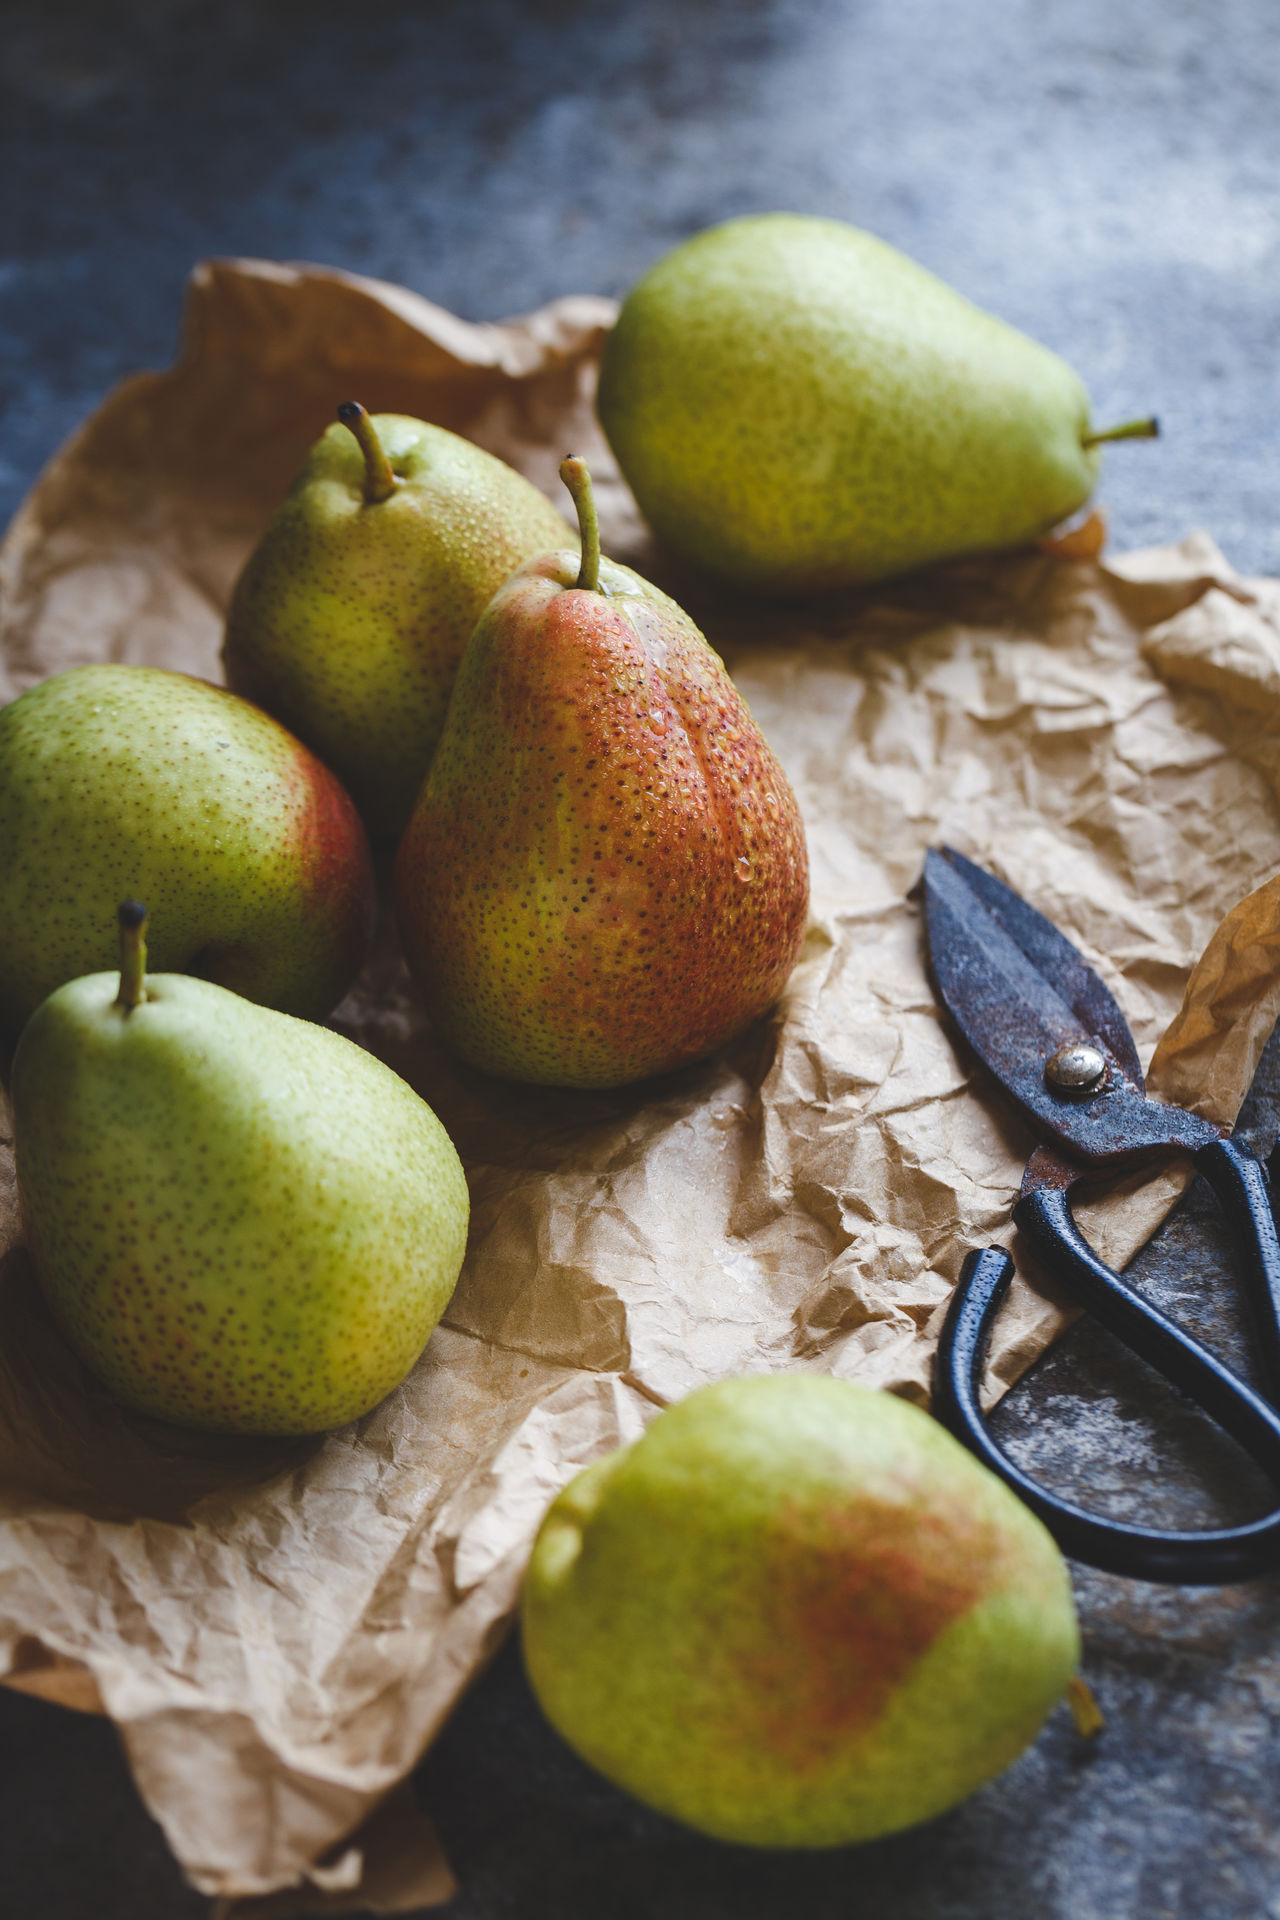 Forelle Pears Agriculture Art ASIA Backgrounds Darkness And Light First Eyeem Photo Food Food And Drink Fresh Fruit Healthy Eating Old Wood Paper Pear Pure Raw Sunlight Sweet Tasty Vietnam Vitamin